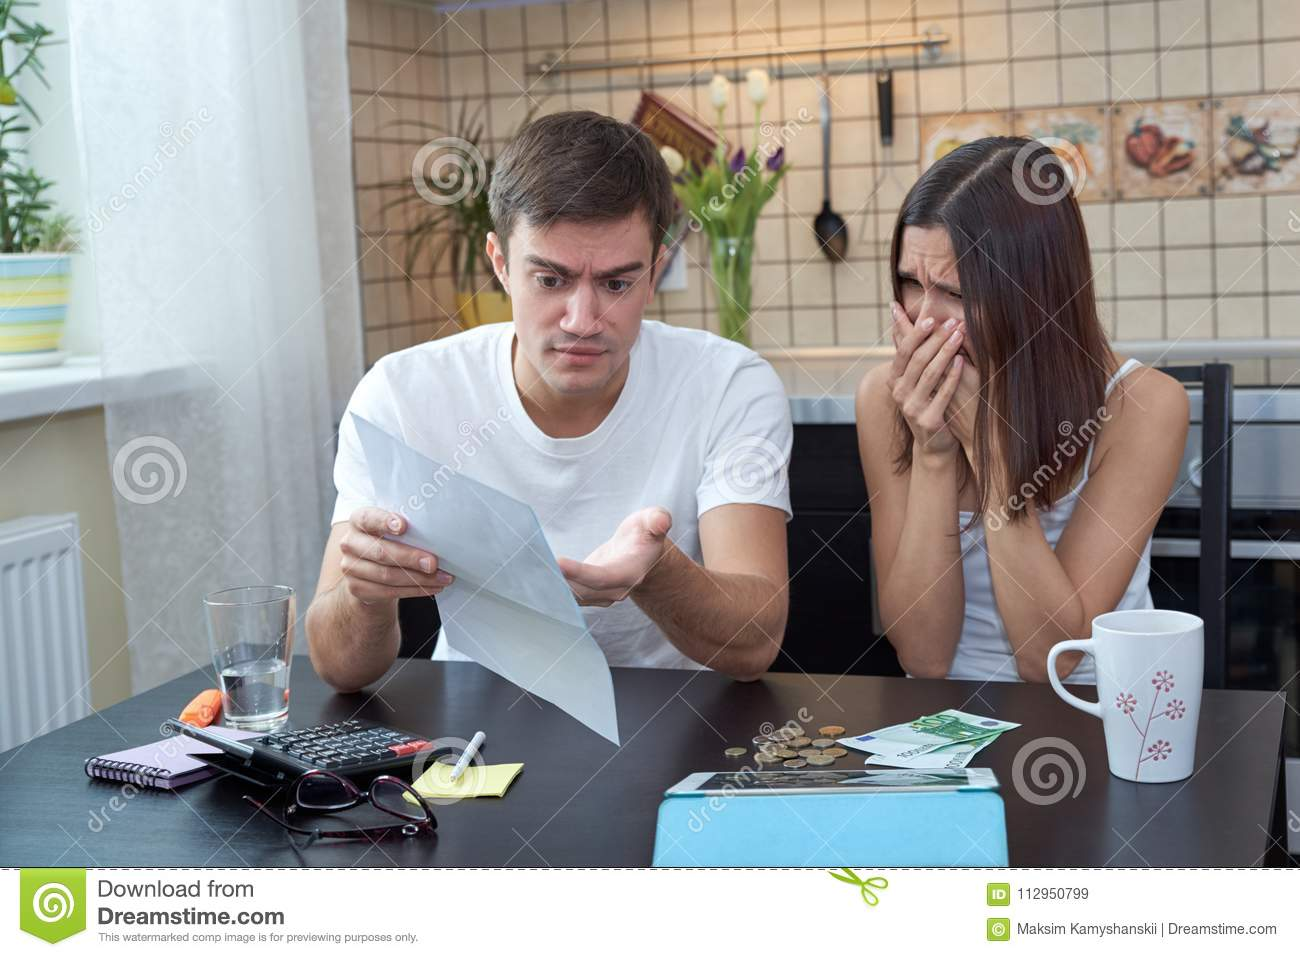 A young couple sitting in the kitchen planning and analyzing the family budget. Financial difficulties, negative emotions